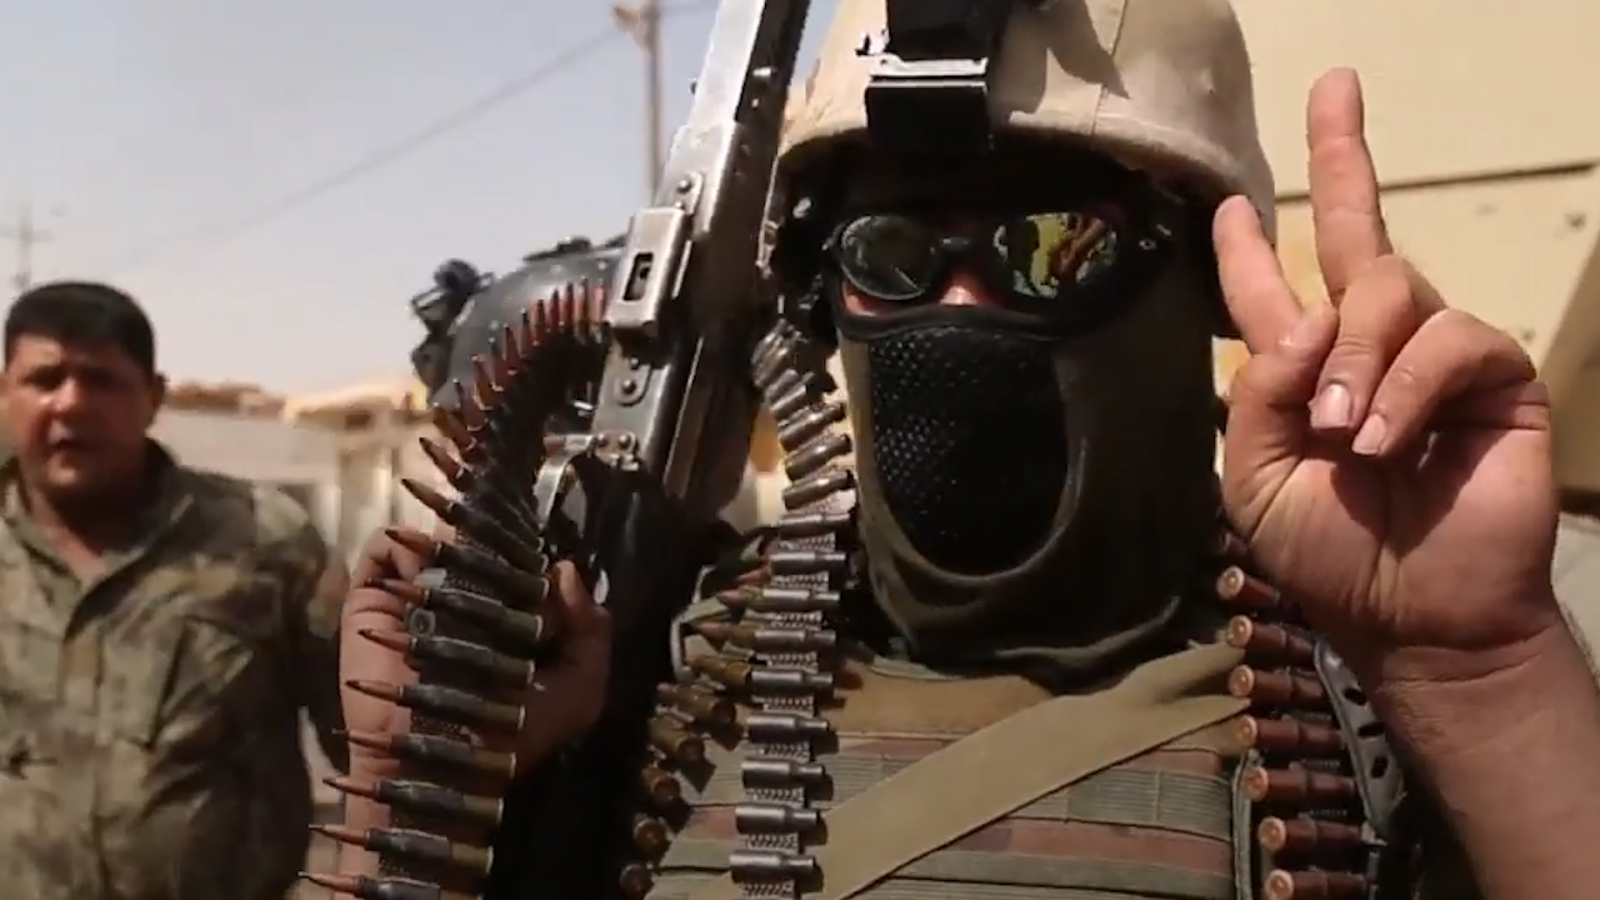 Iraqi soldiers take back Fallujah from ISIS